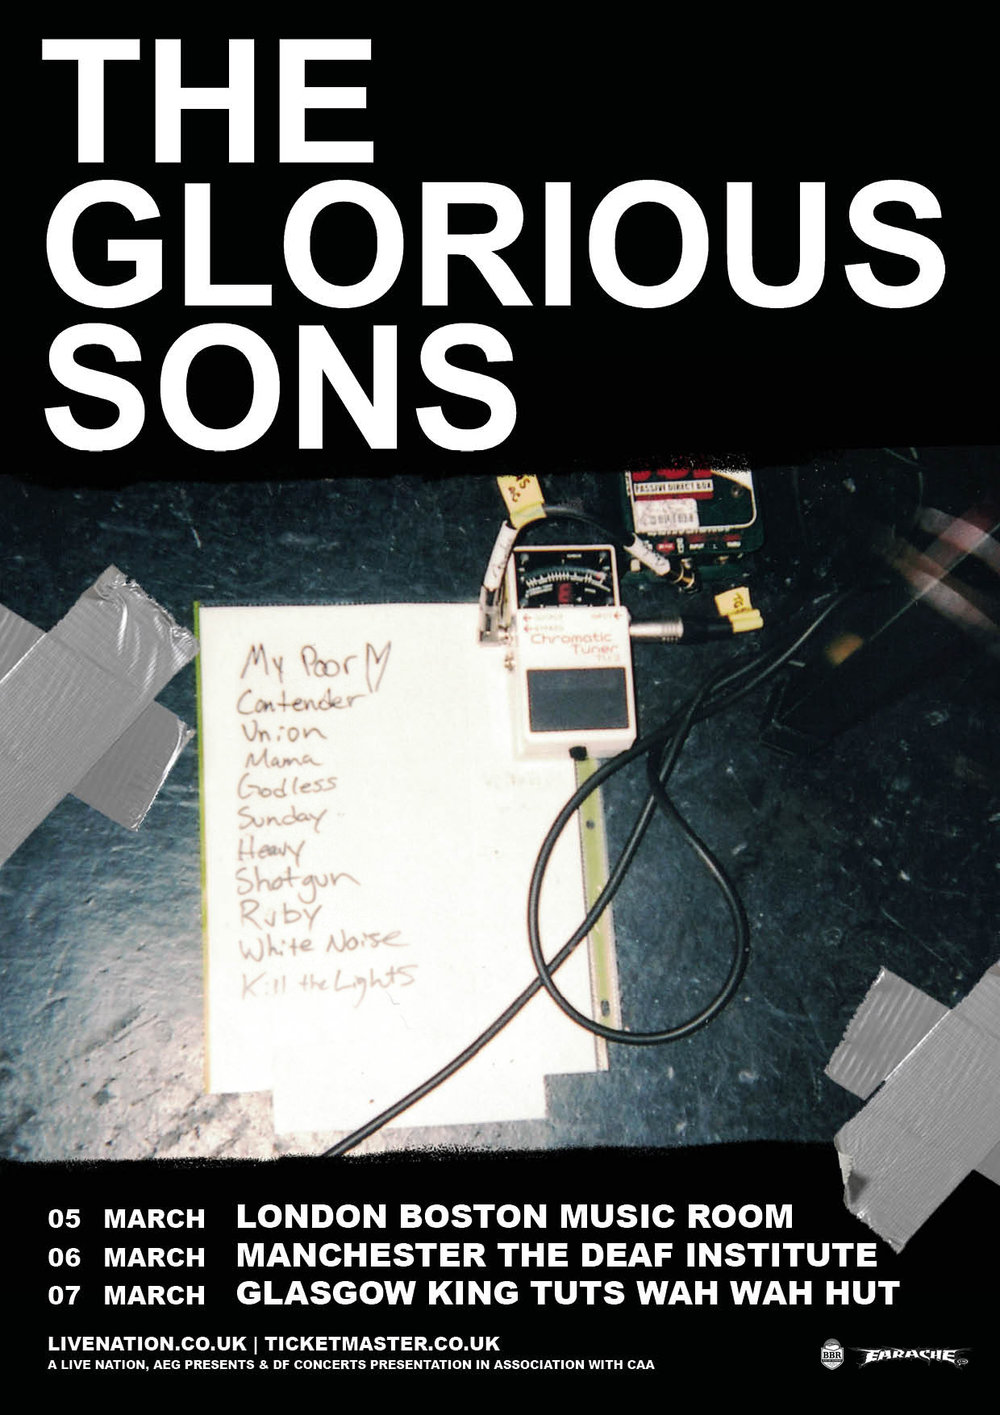 The Glorious Sons Admat-REVISED2.jpg